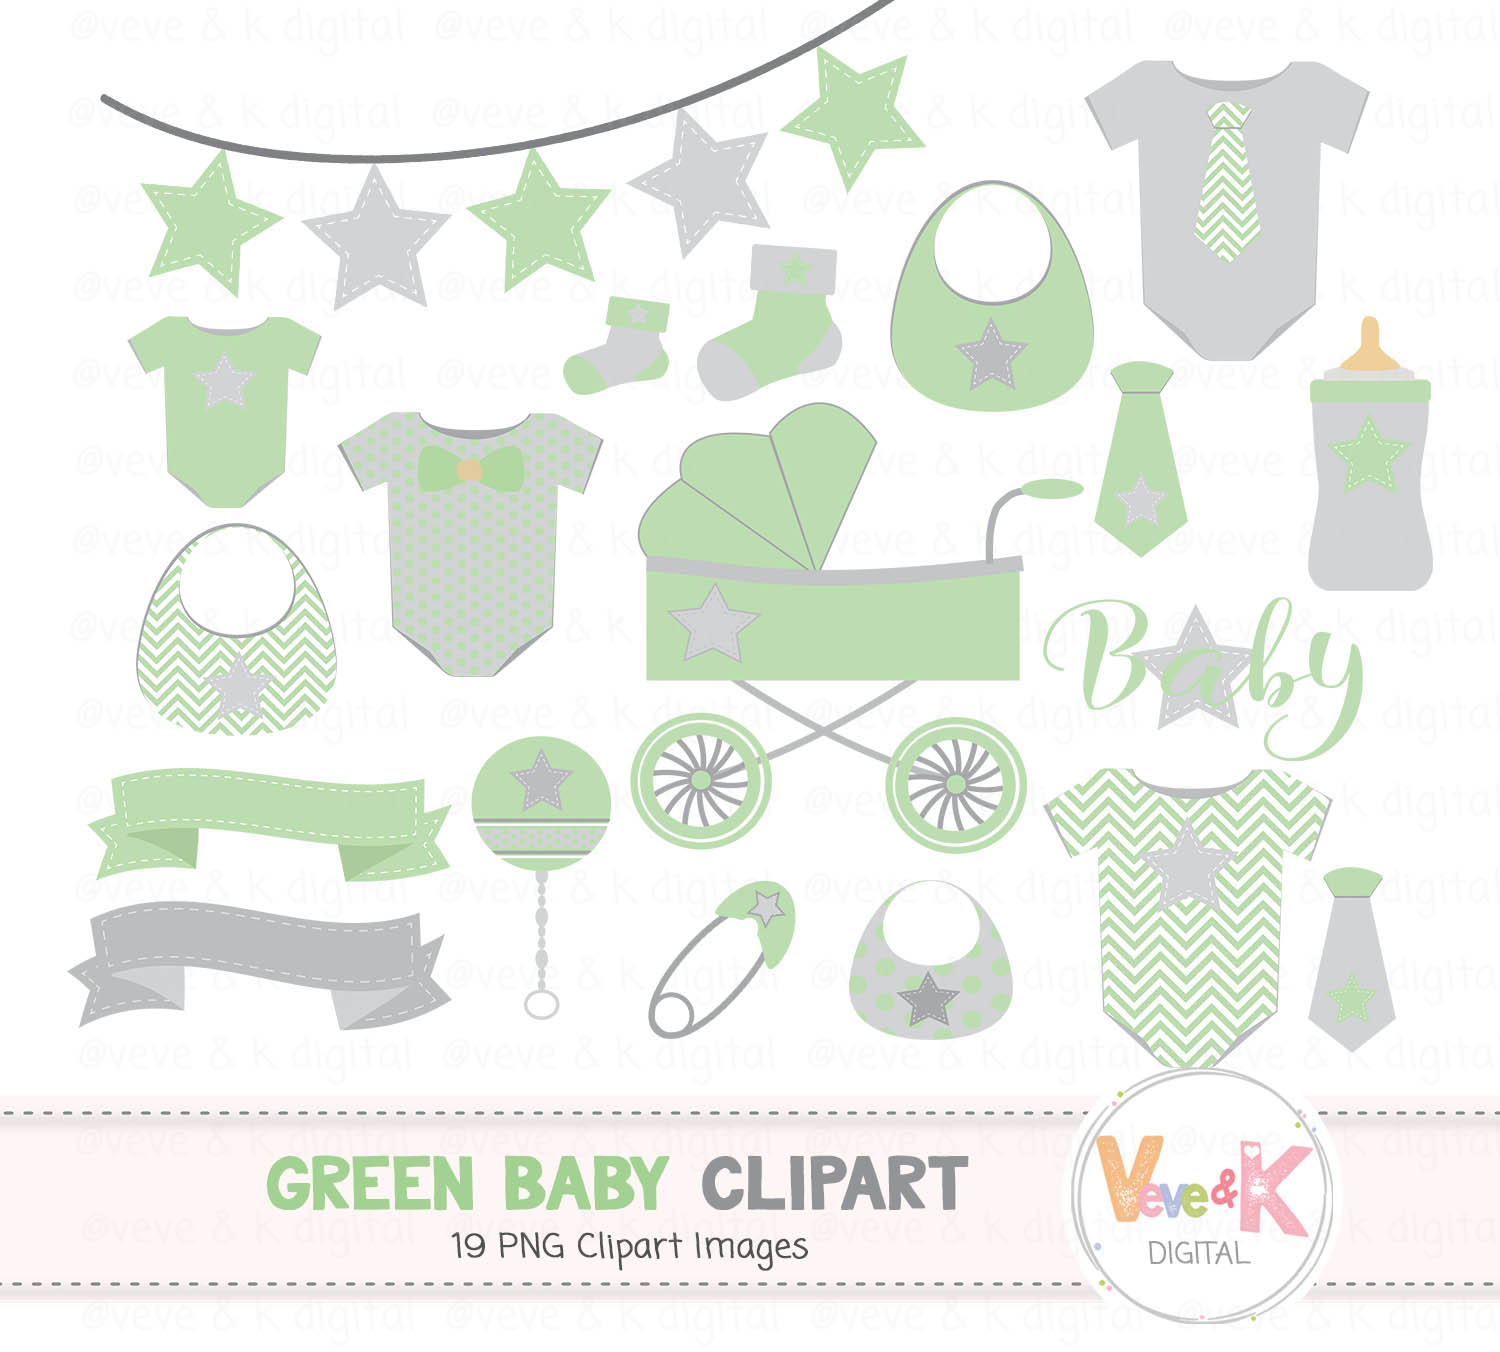 Green Baby Clipart, Gender Neutral Baby Clipart, Baby Shower Clipart, Baby  Graphics, Green and Gray Baby, Baby Shower Clipart, Baby Pack.